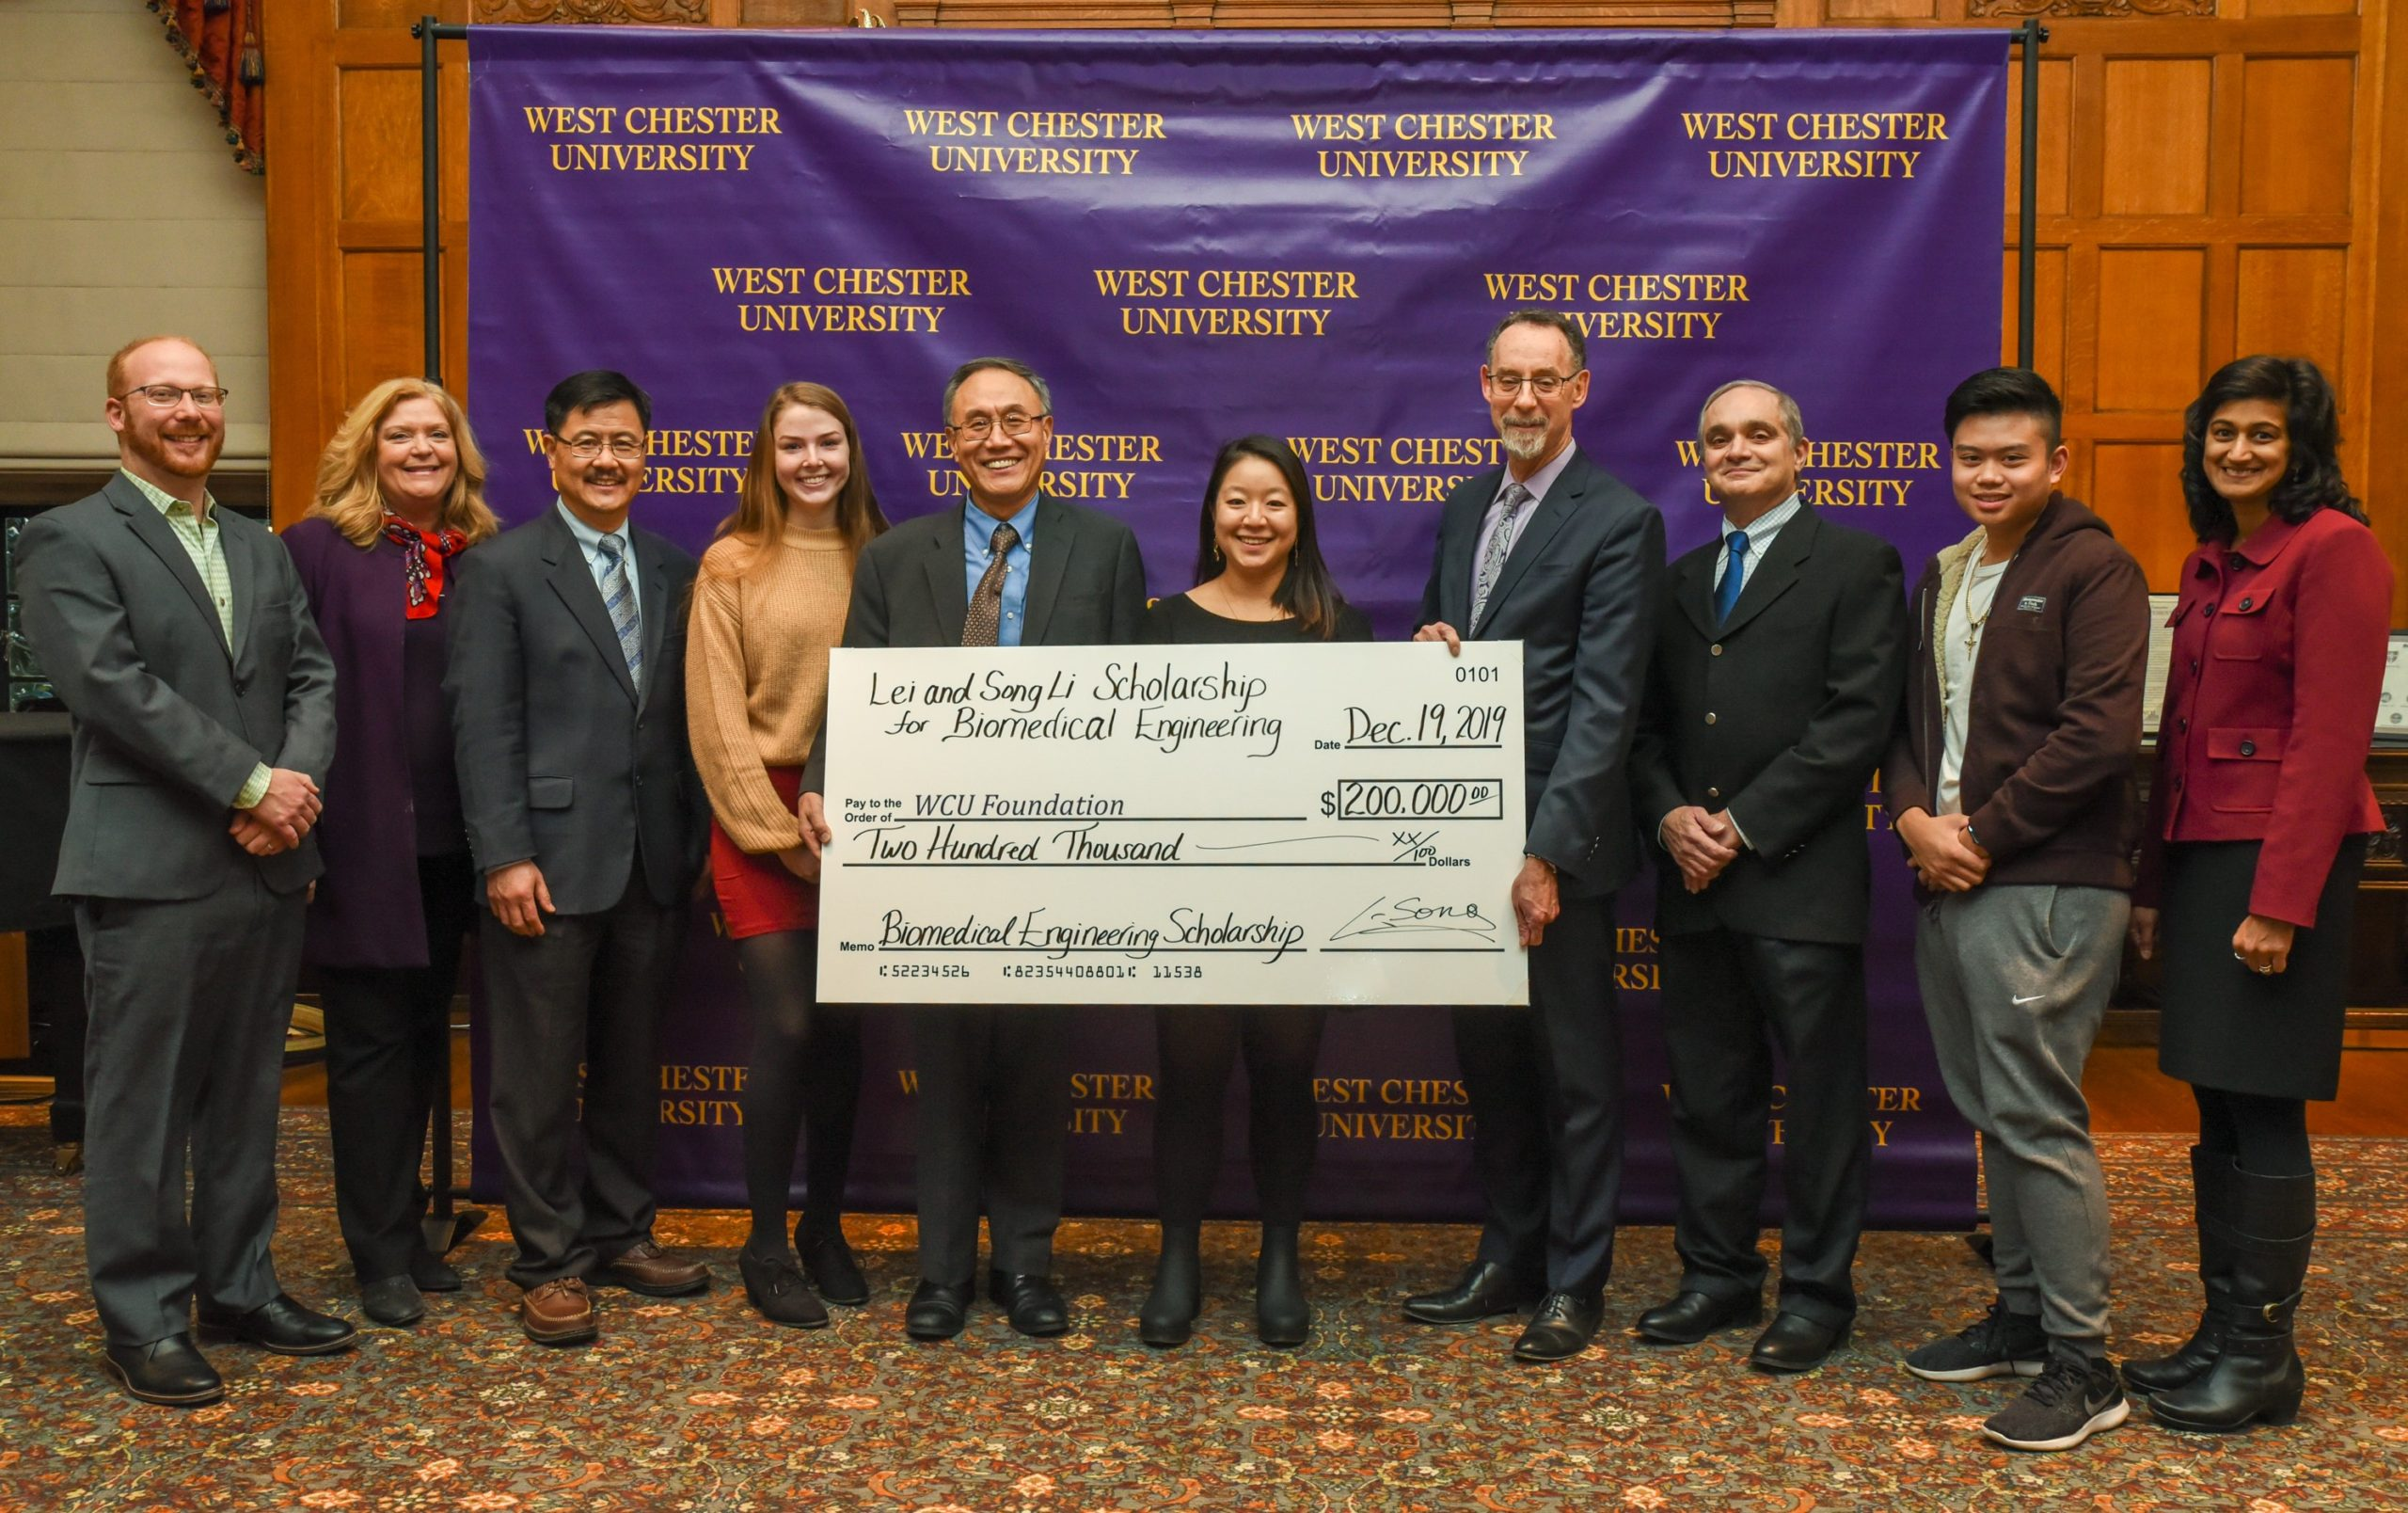 Founder of Frontage Laboratories in Exton Donates $200,000 to WCU for New Biomed Engineering Program